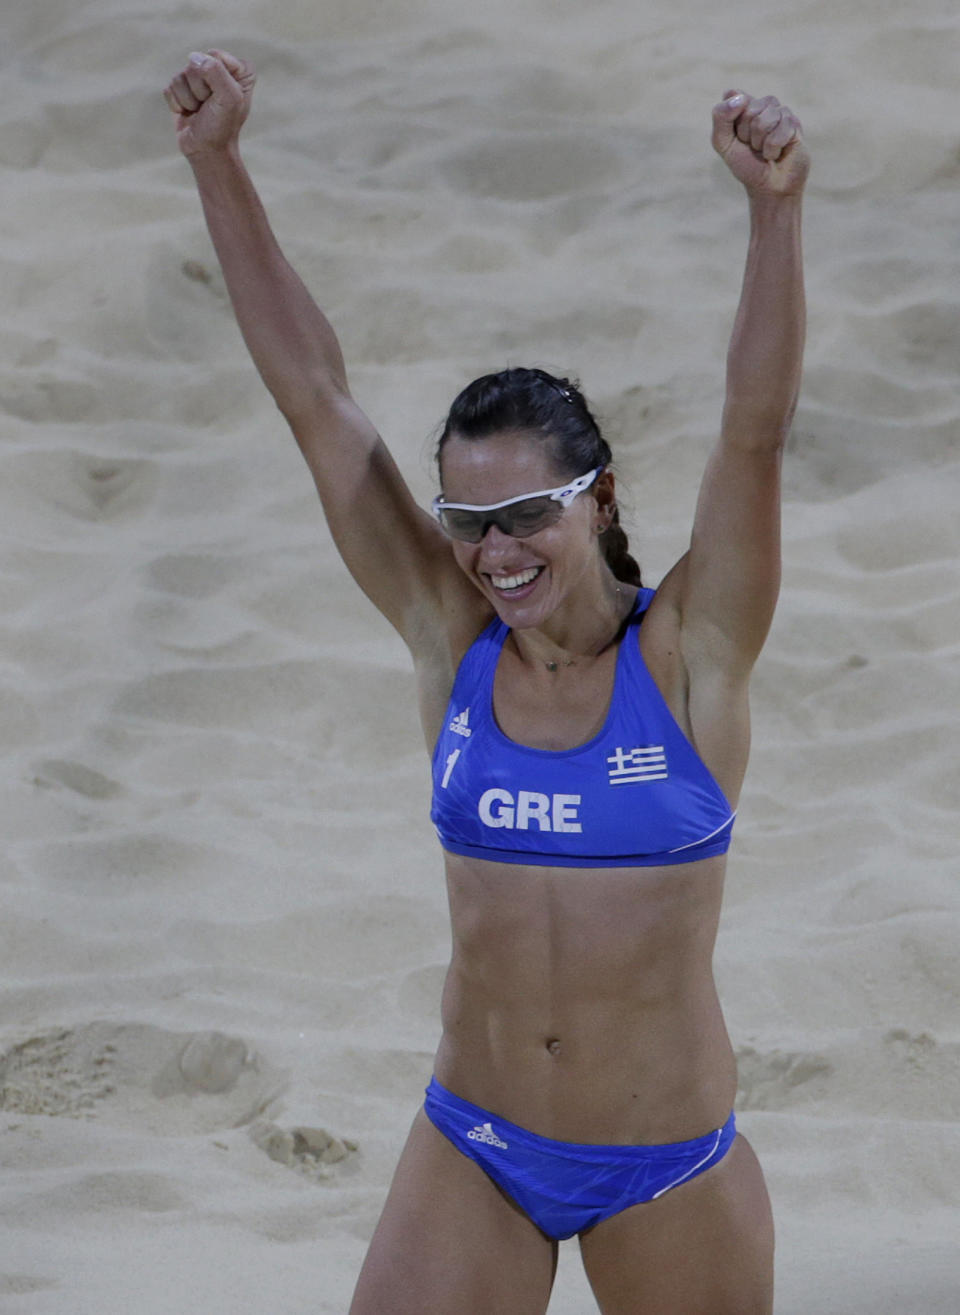 Greece's Maria Tsiartsiani reacts during a beach volleyball match against Switzerland at the 2012 Summer Olympics, Saturday, July 28, 2012, in London. Switzerland won in straight sets. (AP Photo/Dave Martin)